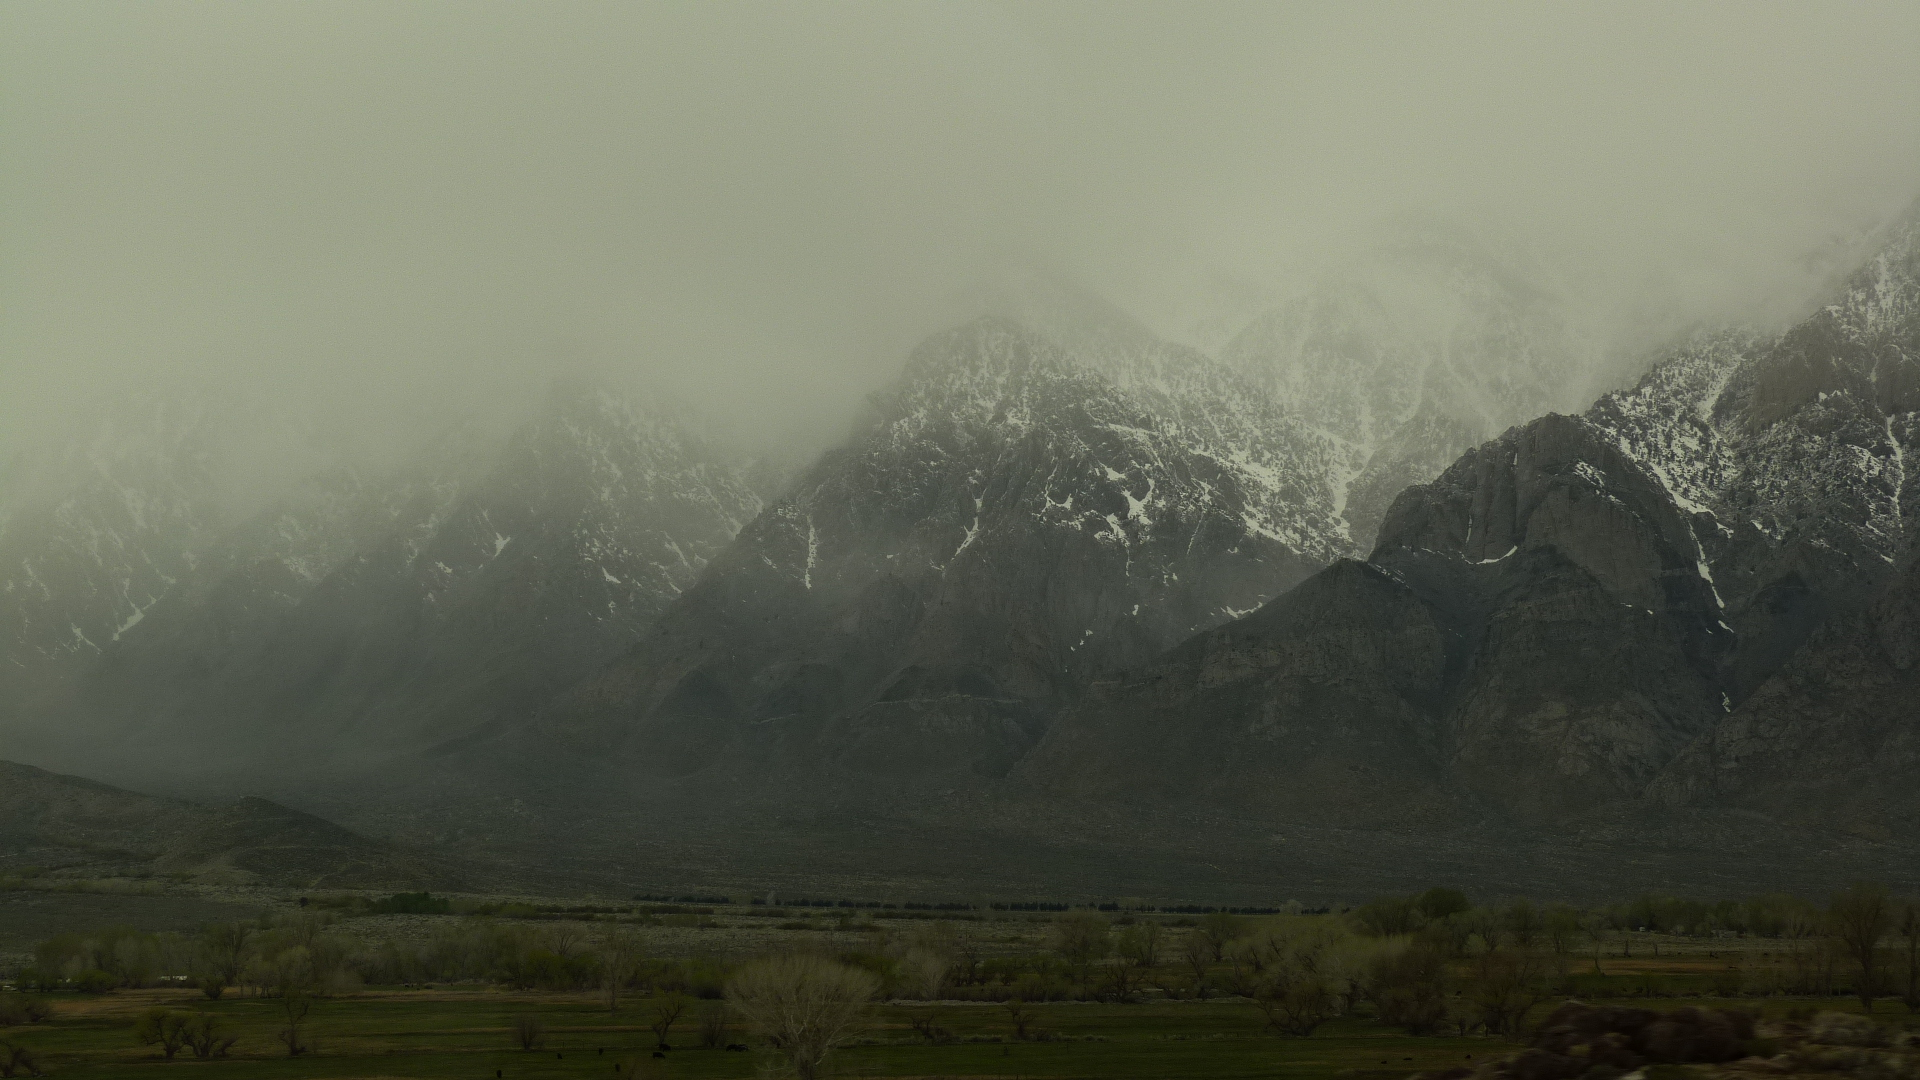 Snow-covered mountains in clouds or fog